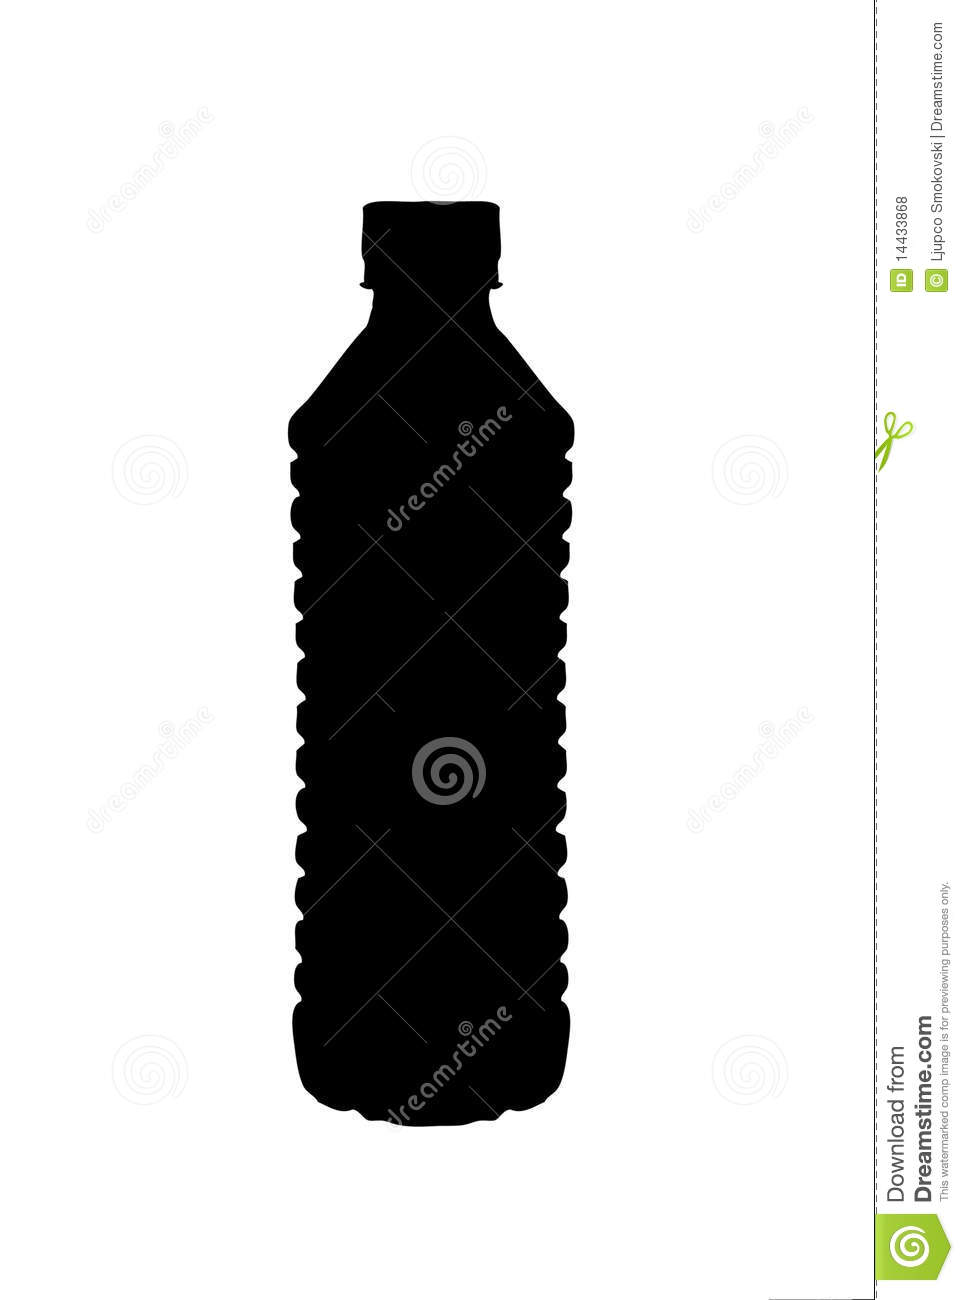 Silhouette Of A Water Bottle Royalty Free Stock Photos - Image ...